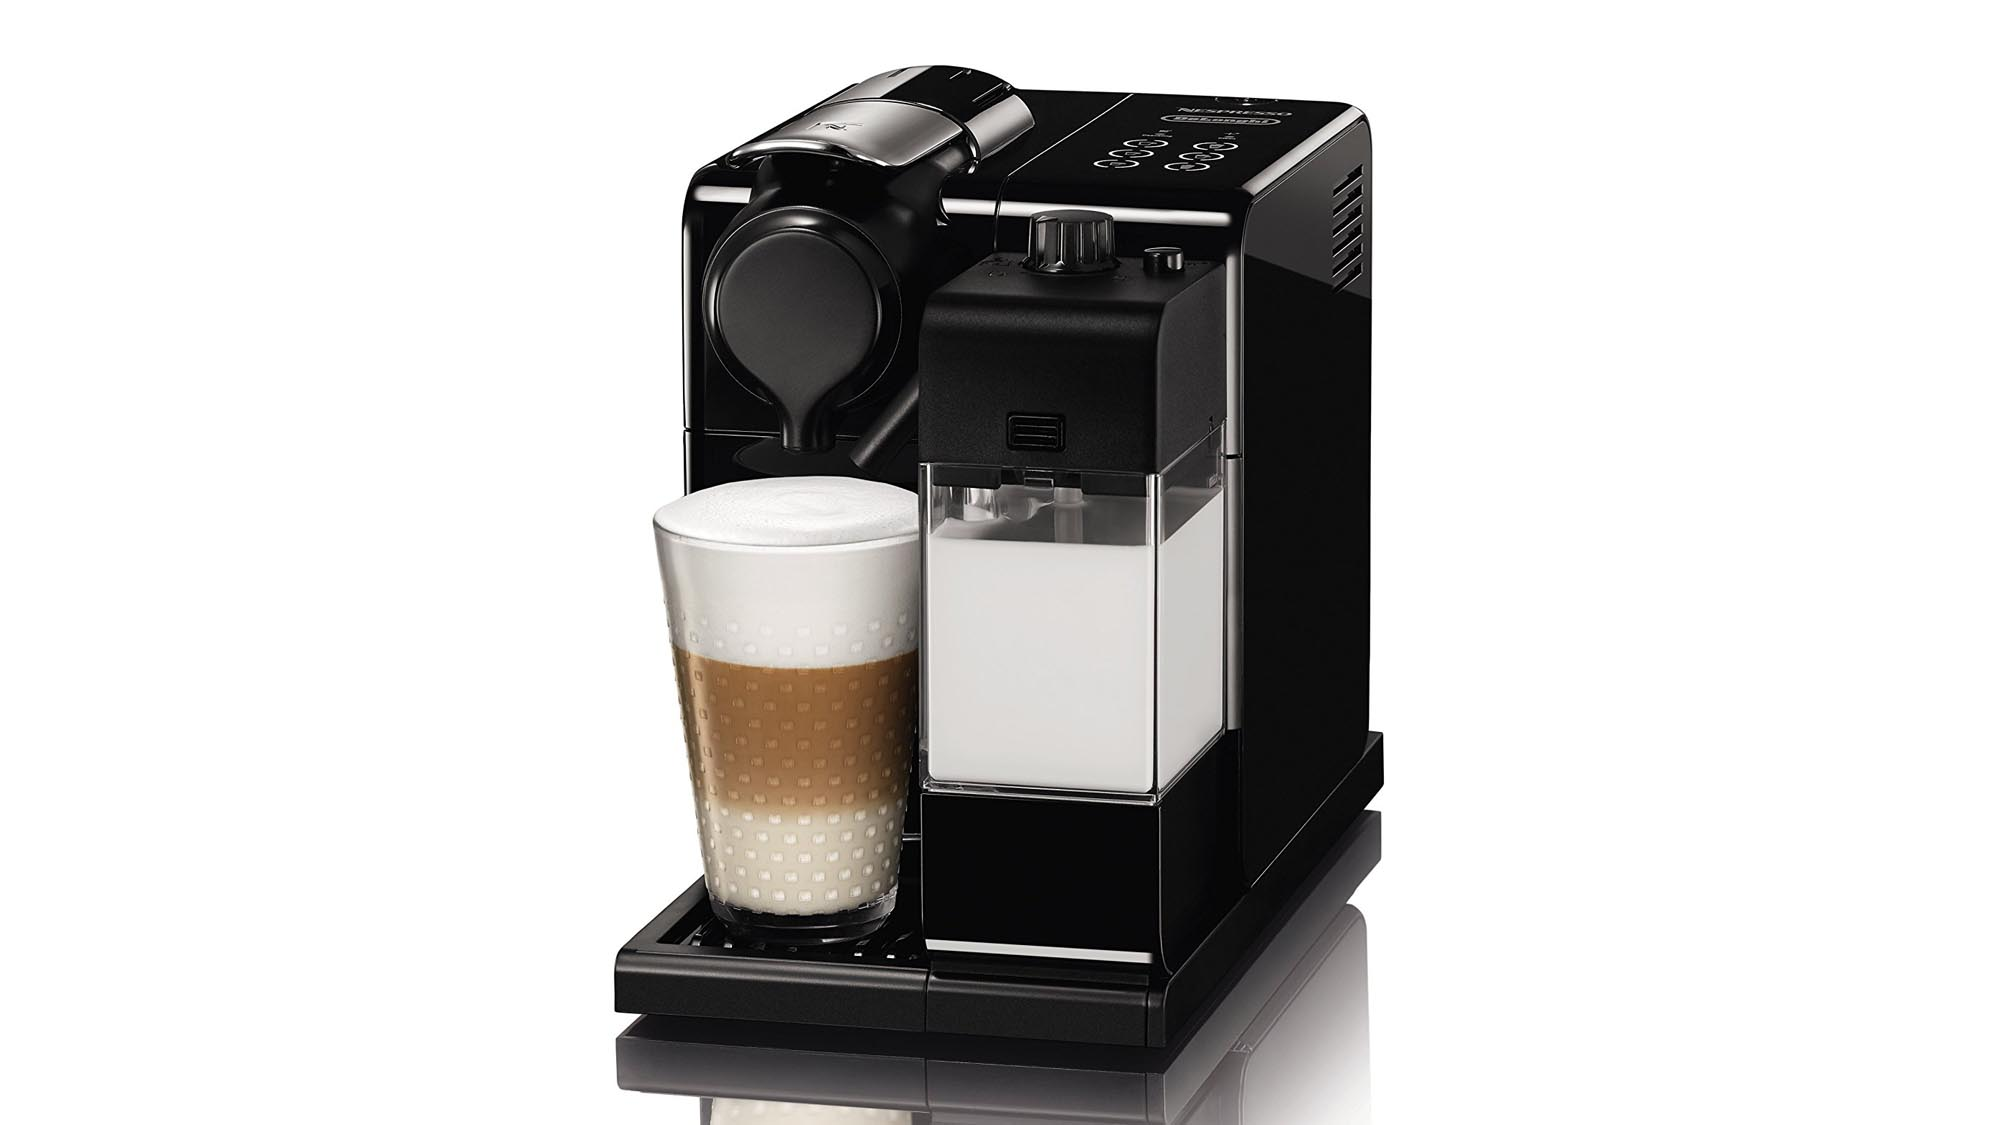 How Do You Say Coffee Maker In Italian : Best coffee machine 2018: How to pick the right coffee machine for you Expert Reviews